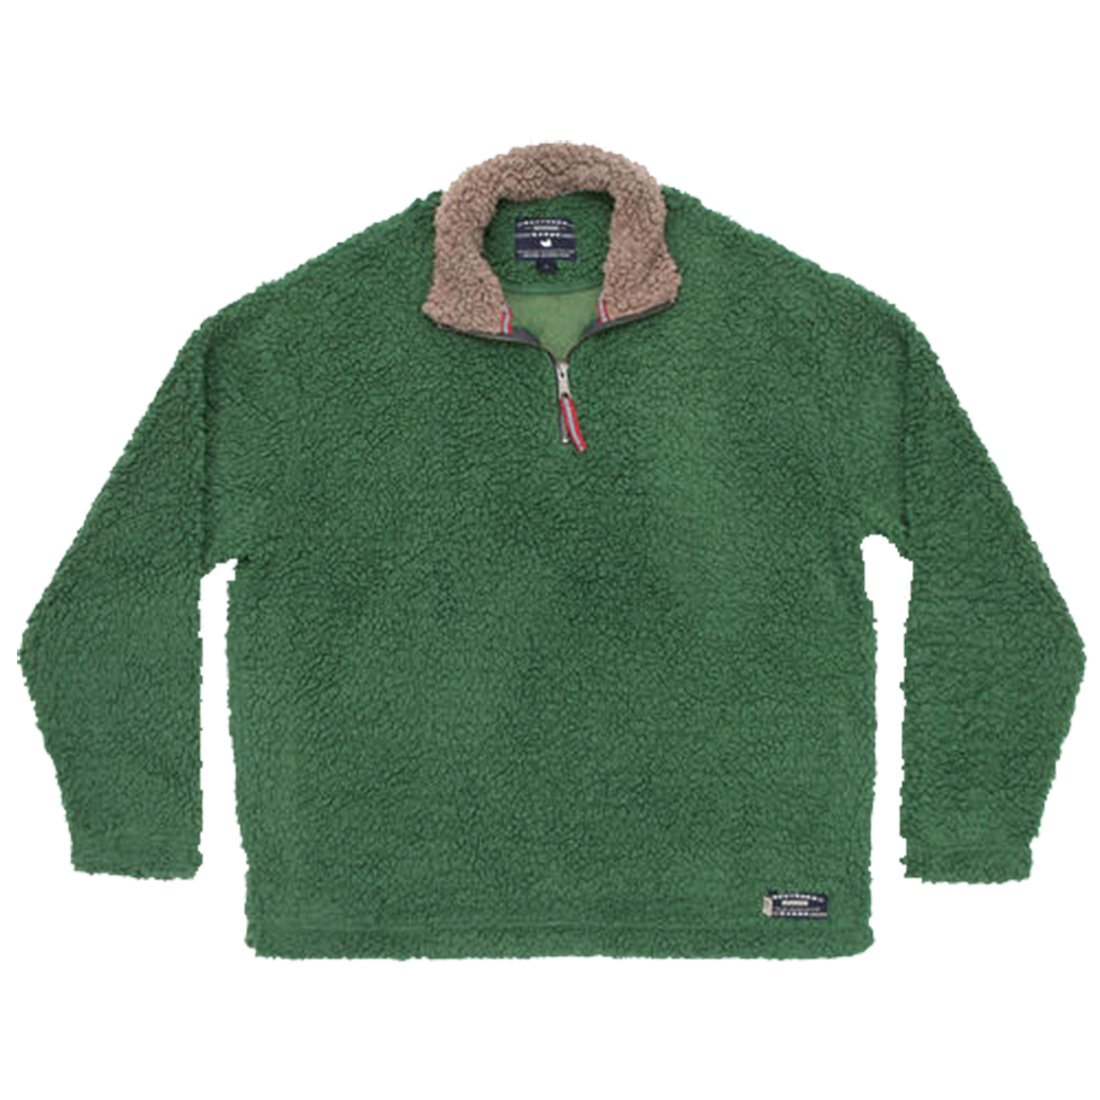 Southern Marsh Appalachian Pile Sherpa Pullover, Washed Dark Green, X-Small